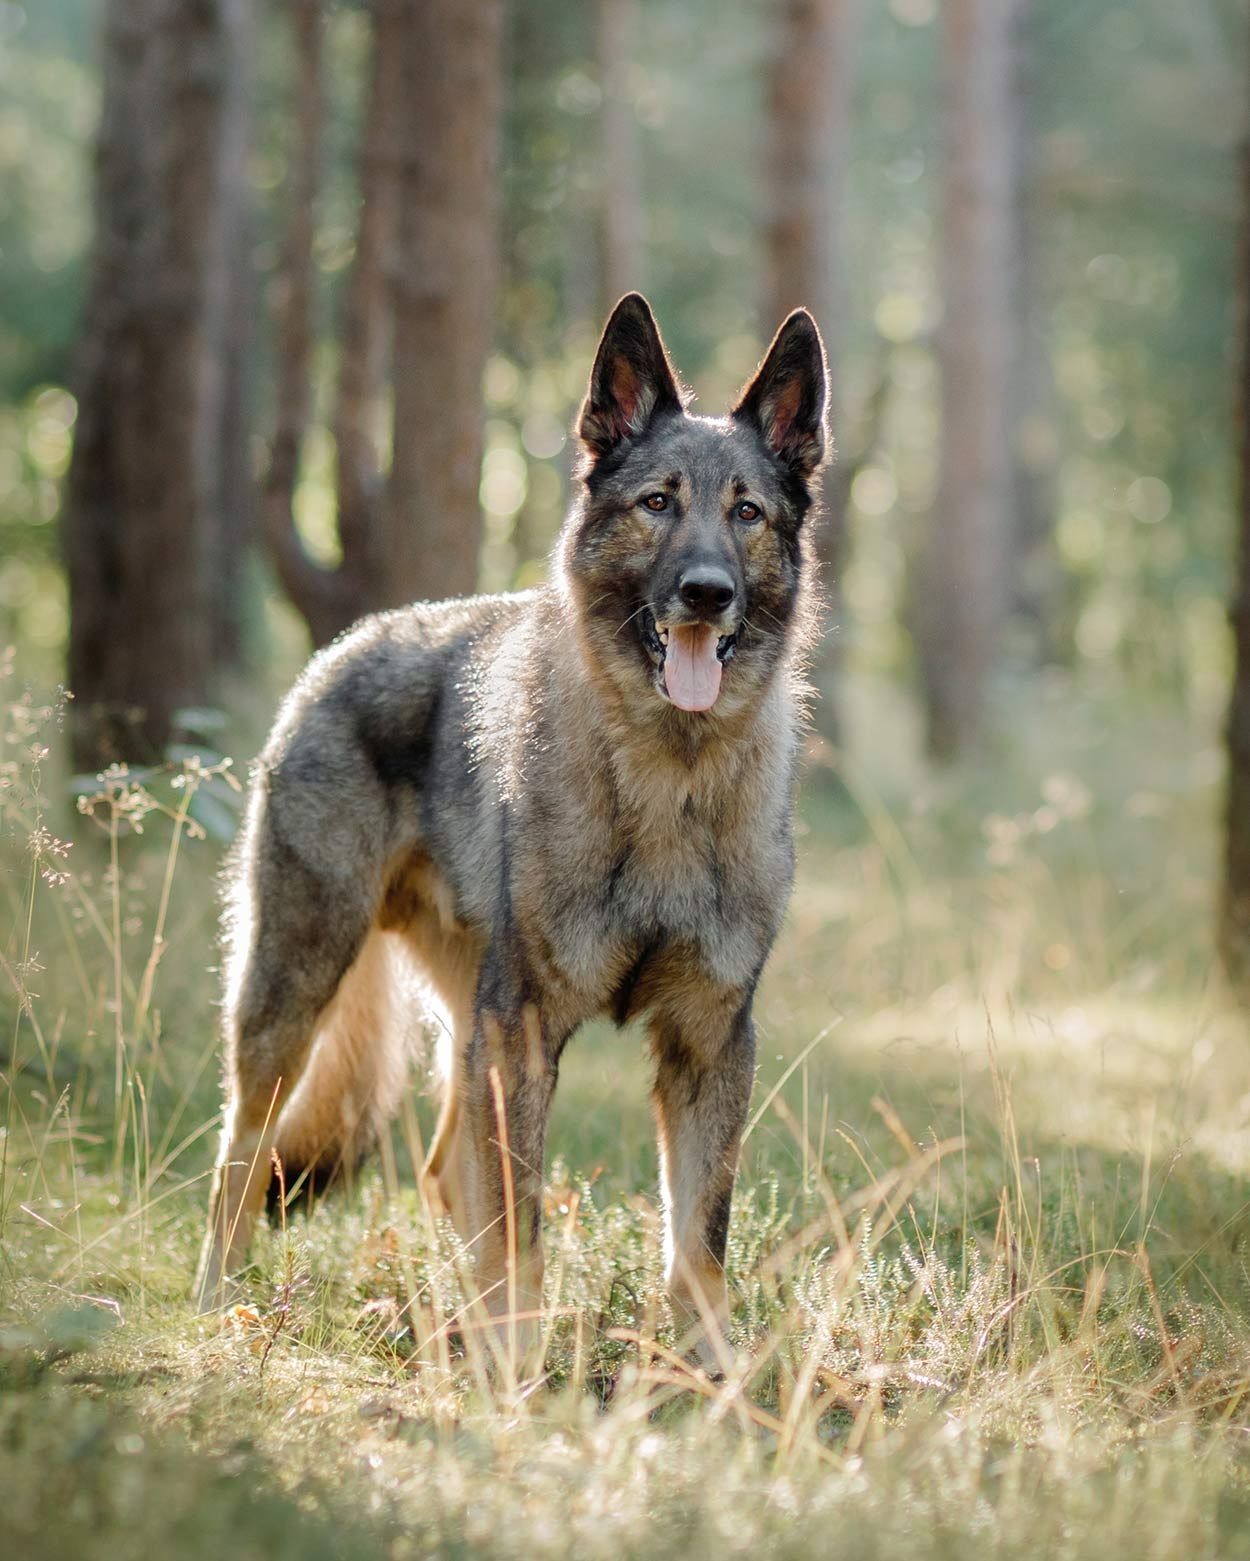 Russian Dog Breeds The Amazing Pups That Came From Russia Russian Dogs Russian Dog Breeds Black Dogs Breeds